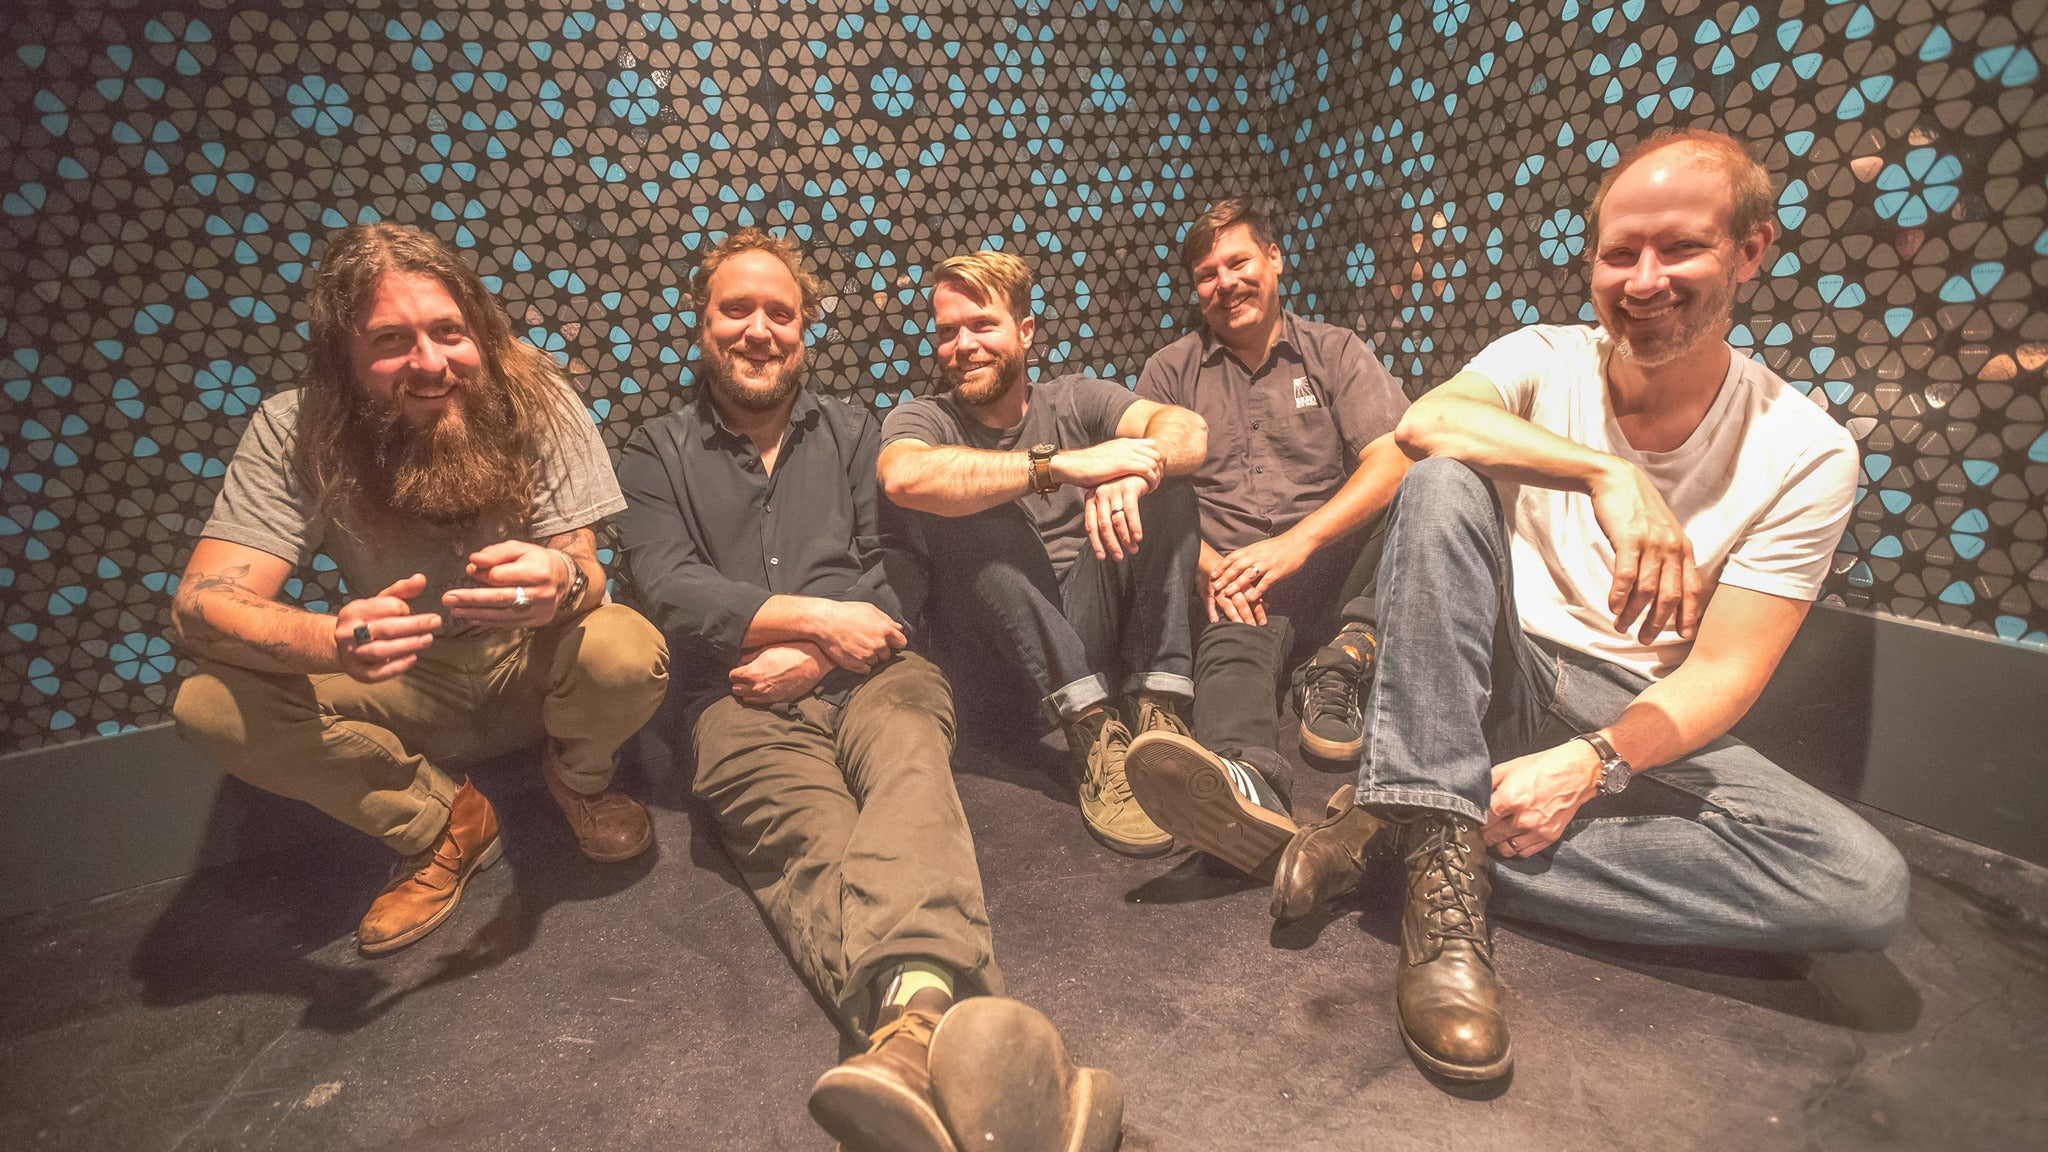 Greensky Bluegrass at State Theatre, Kalamazoo - Kalamazoo, MI 49002